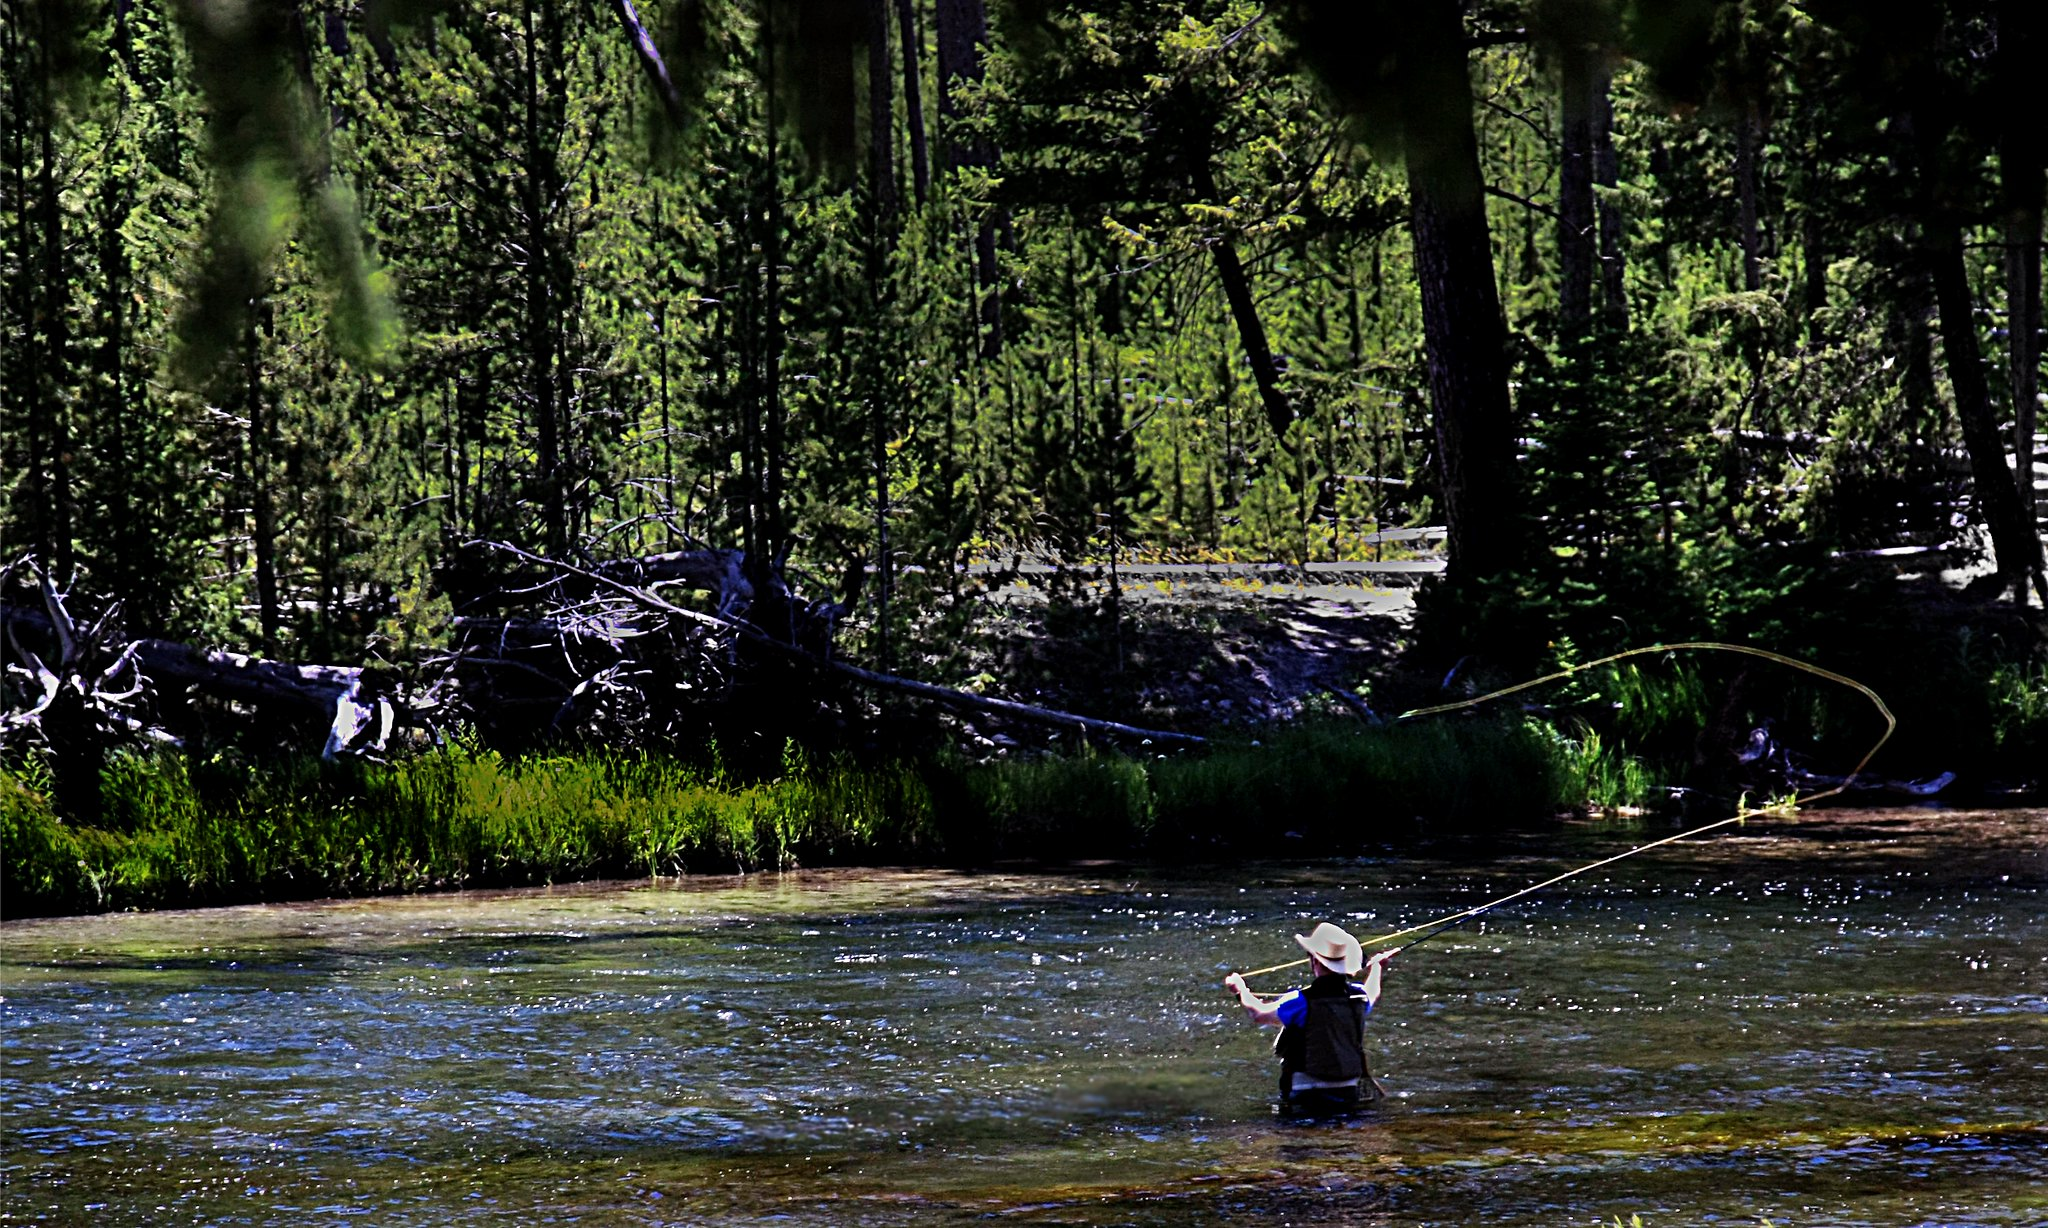 Summer Desktop Wallpaper Hd Fly Fishing In Yellowstone National Park Madison Doldrums